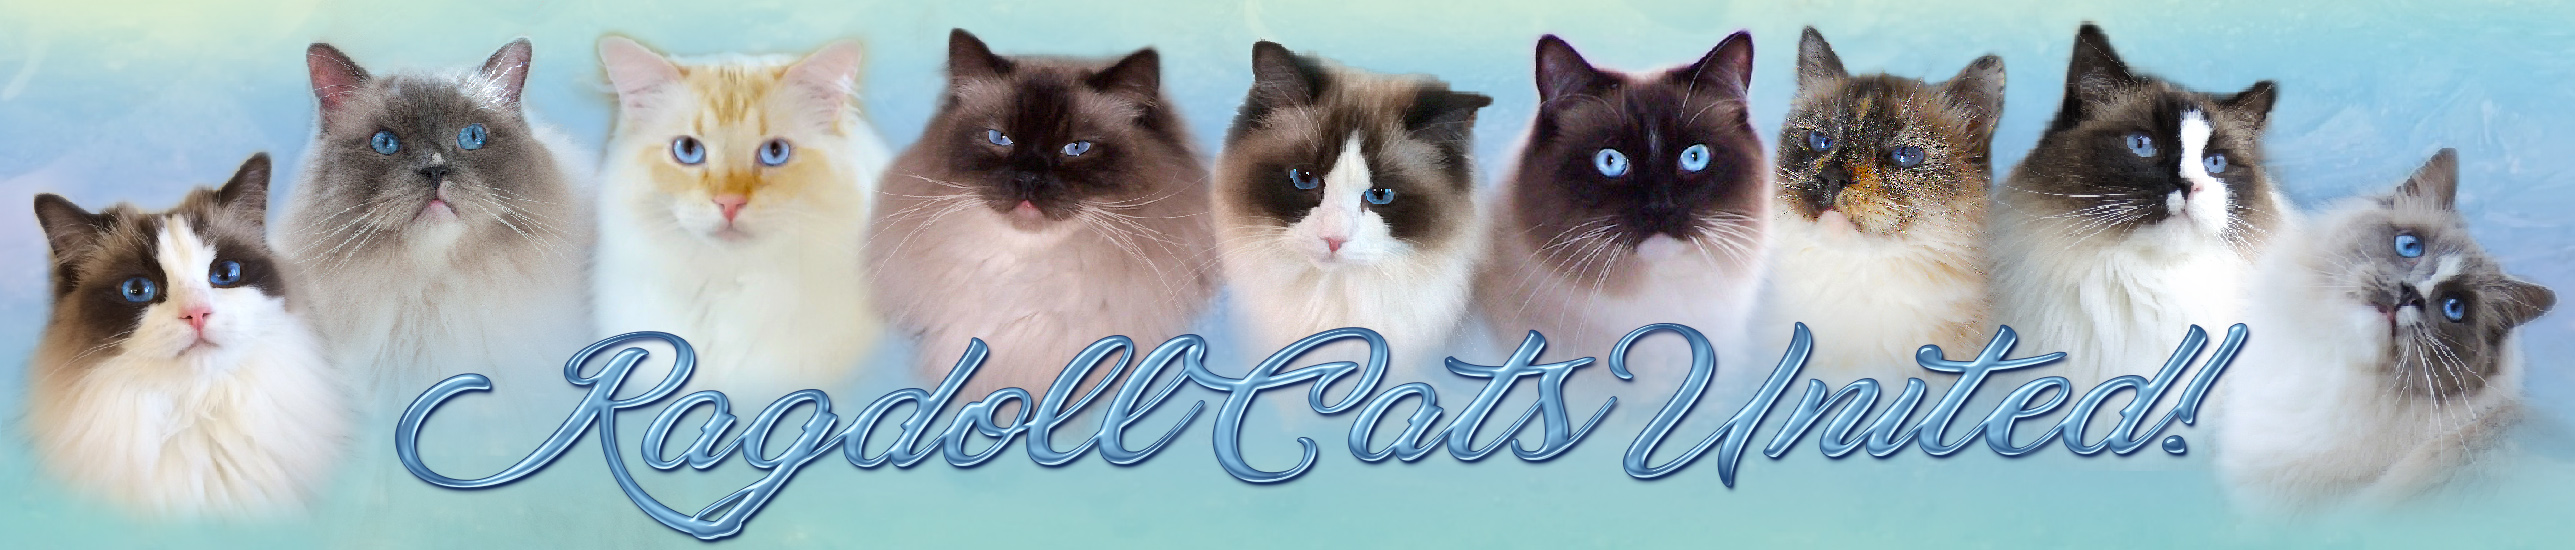 RagdollCatsUnited.com forum banner pictures of beautiful Ragdoll cats